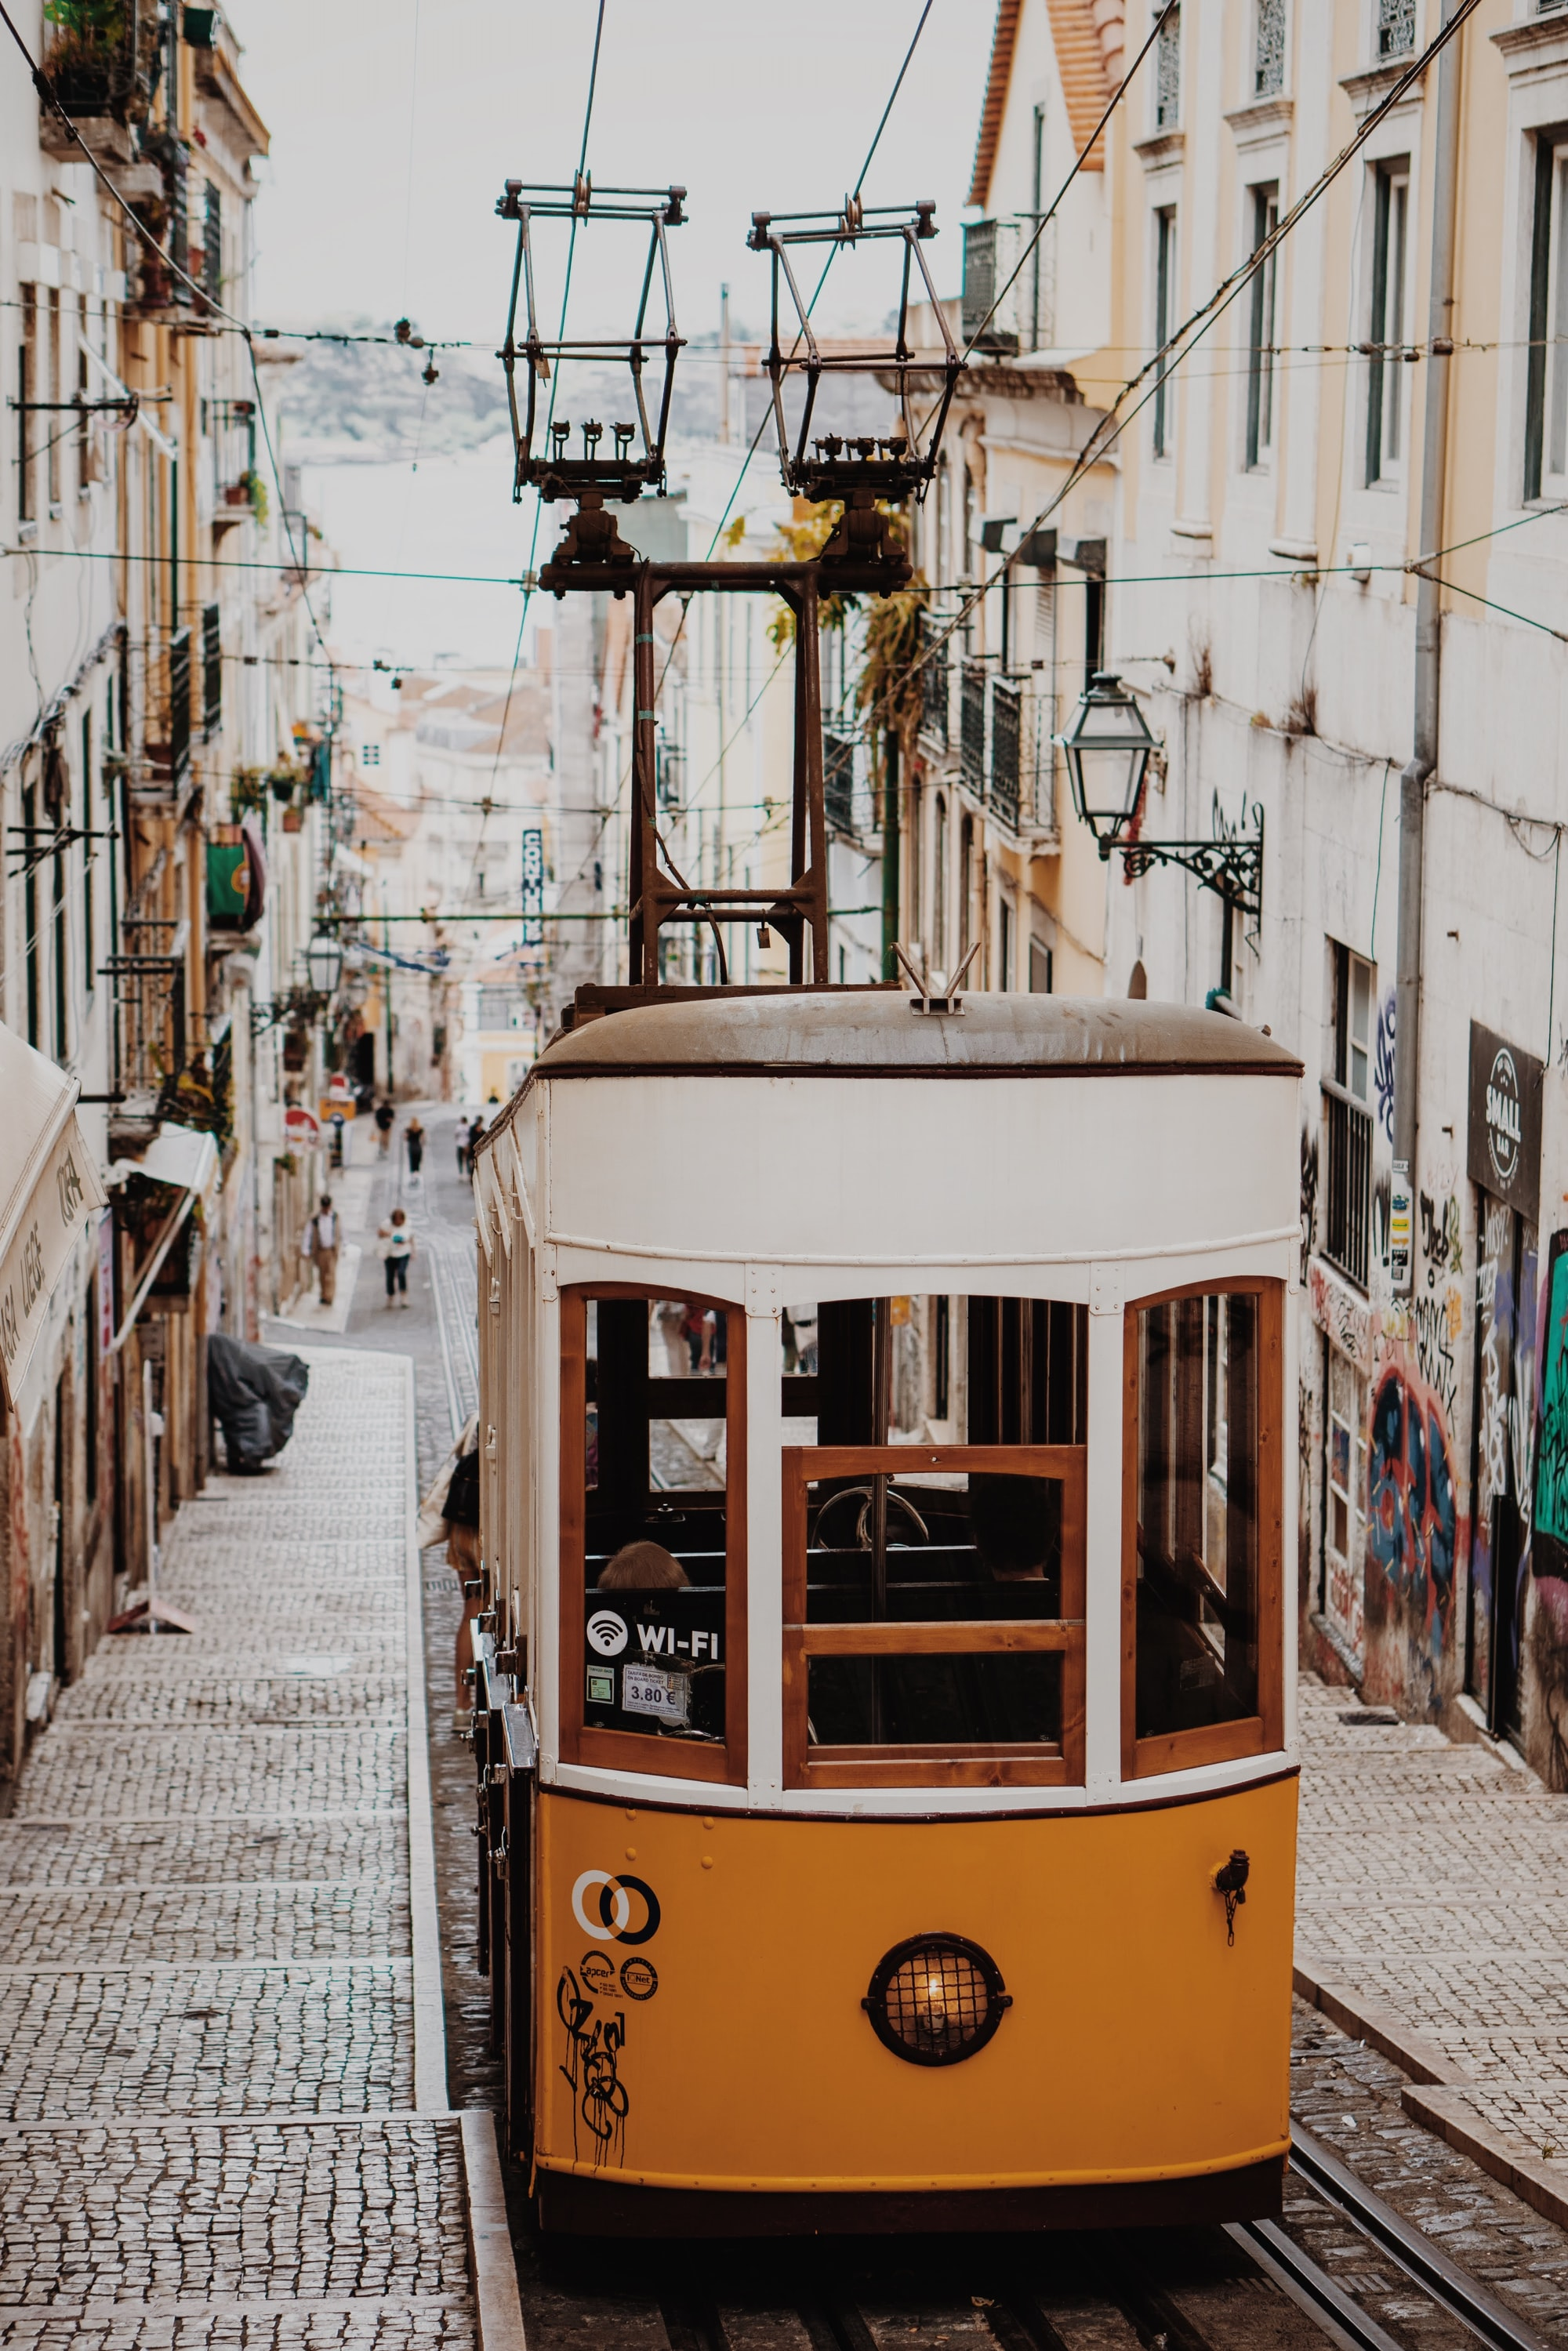 Finally we got to visit lisbon! I took my Sony Alpha 6500 with a 50mm to get this shots. The old Carros eléctricos are awesome to photograph because of their vintage wooden look. Also steep hills give a lot of deepness.